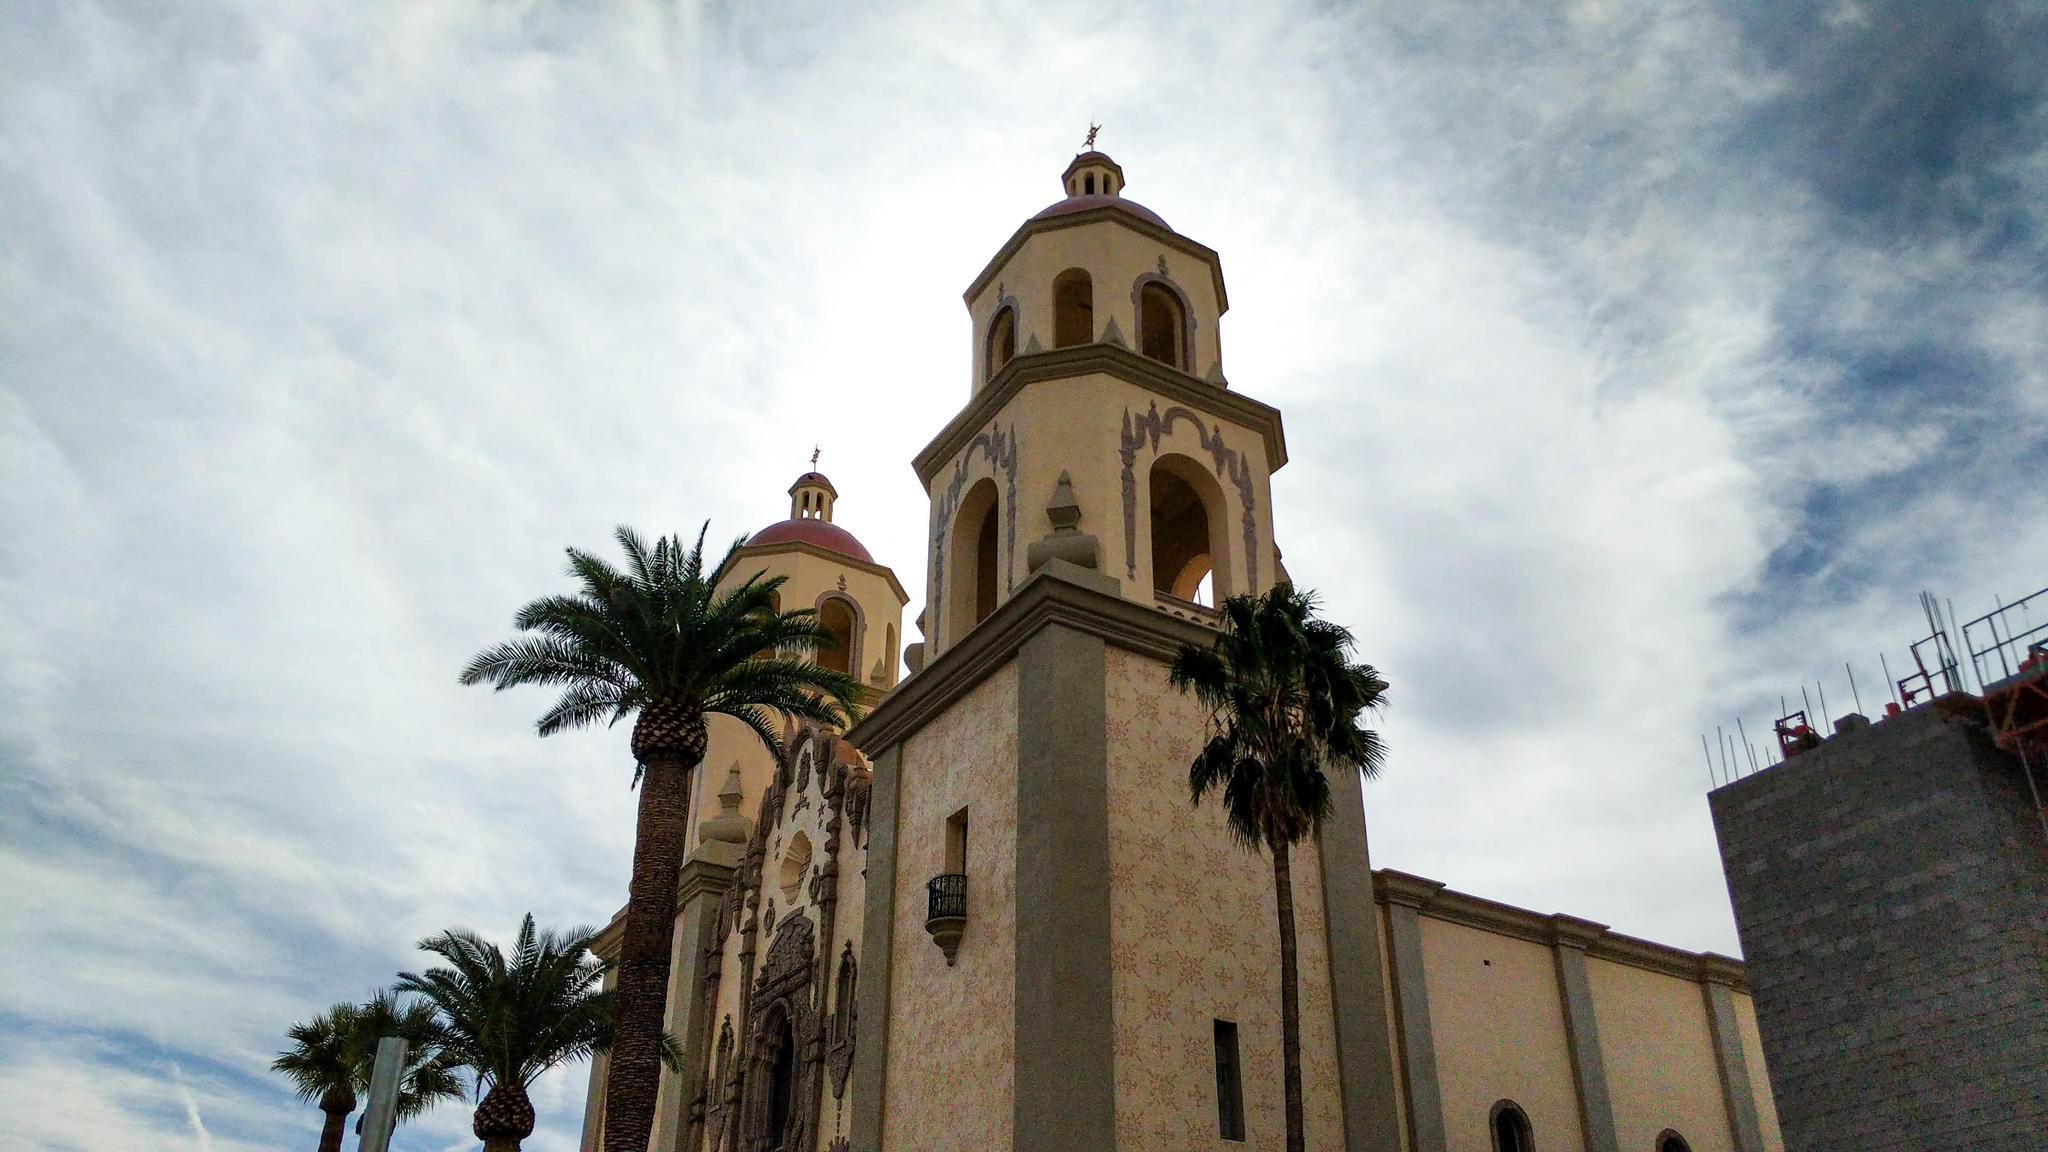 St Augustine Cathedral, at S Stone Ave and E Corral St